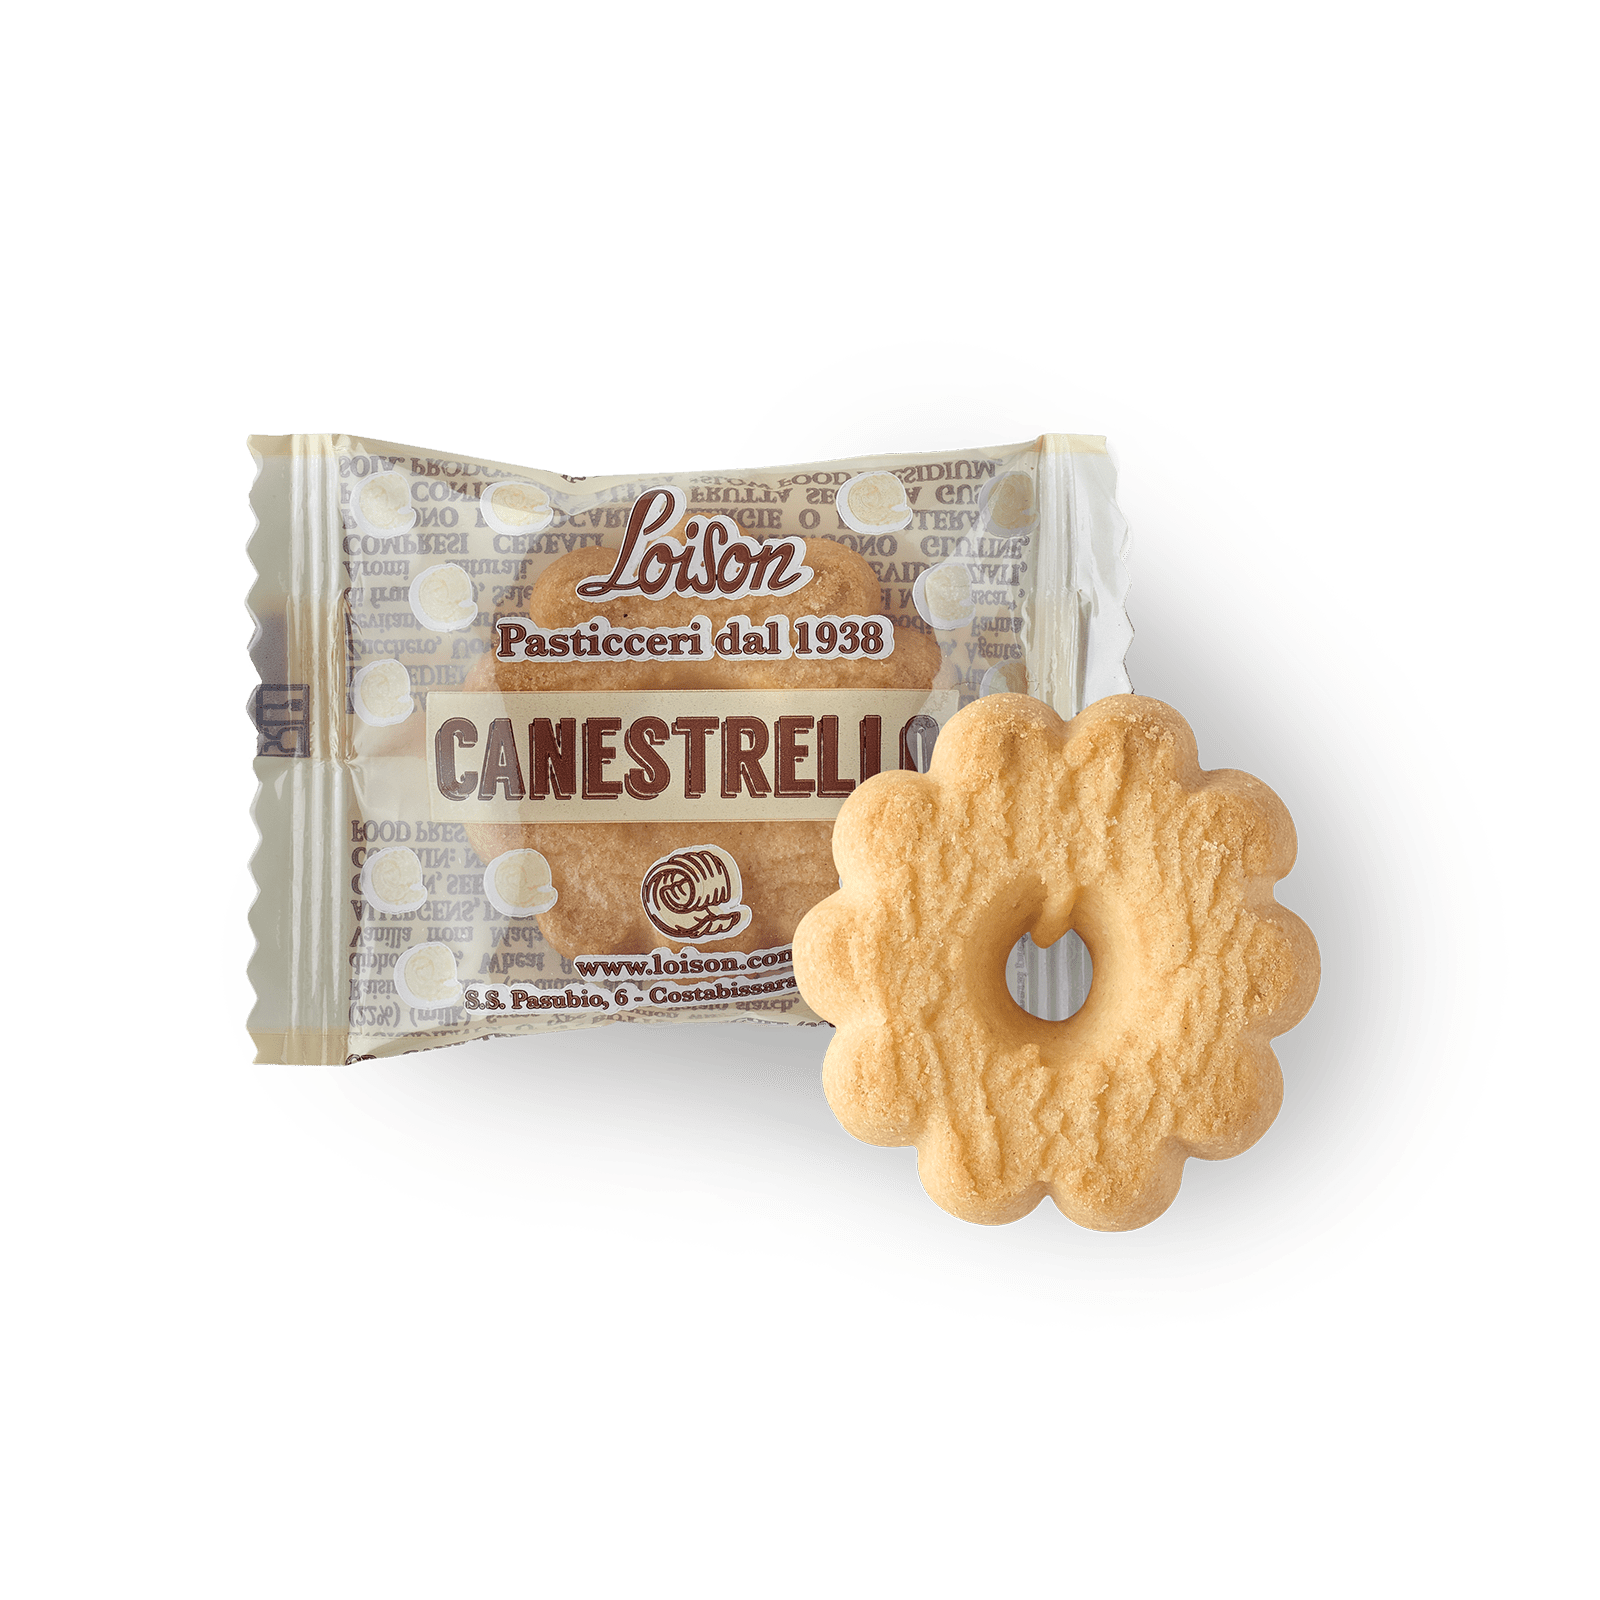 Canestrello biscuit individually wrapped Loison